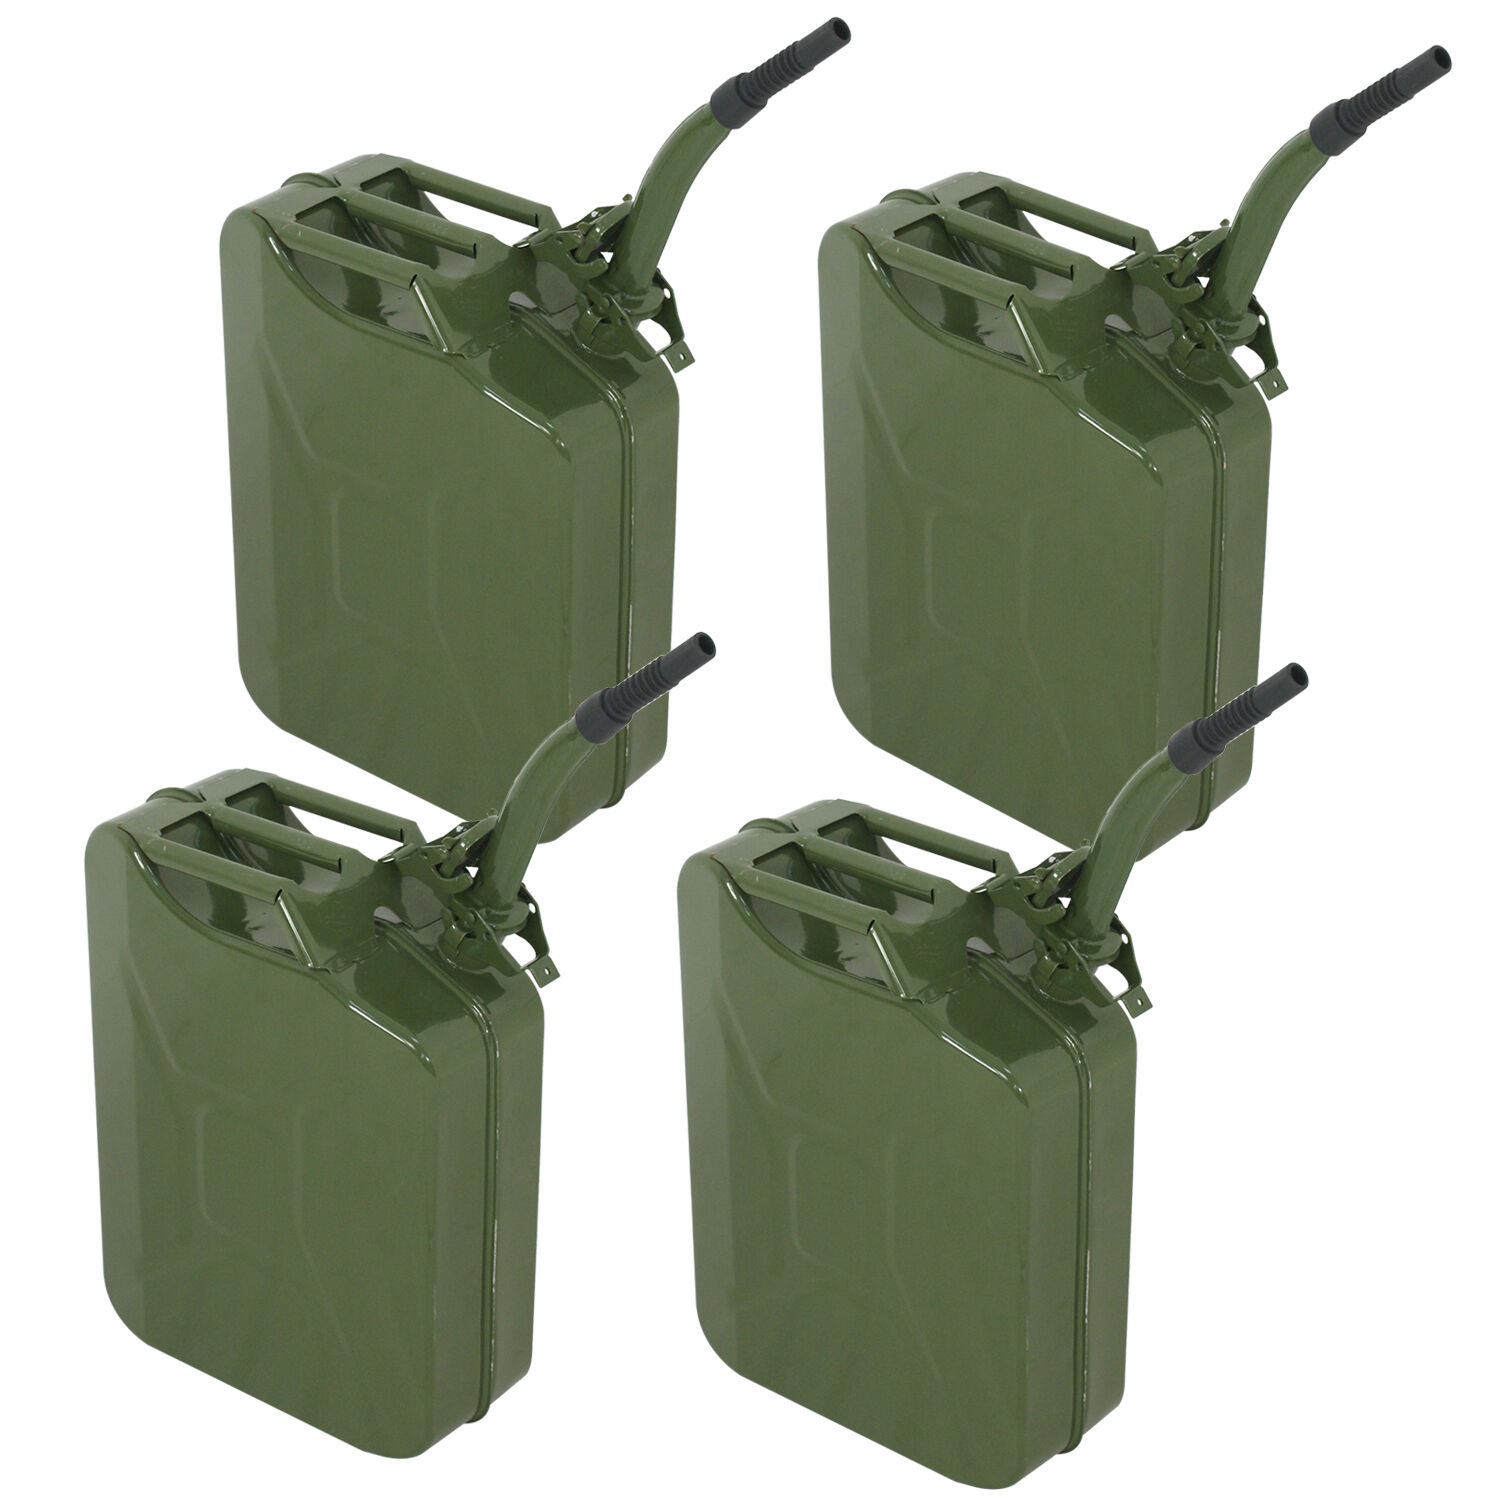 4pcs Green Jerry Can 5 Gallon 20L Gas Gasoline Fuel Army Backup Steel Tank Metal Business & Industrial